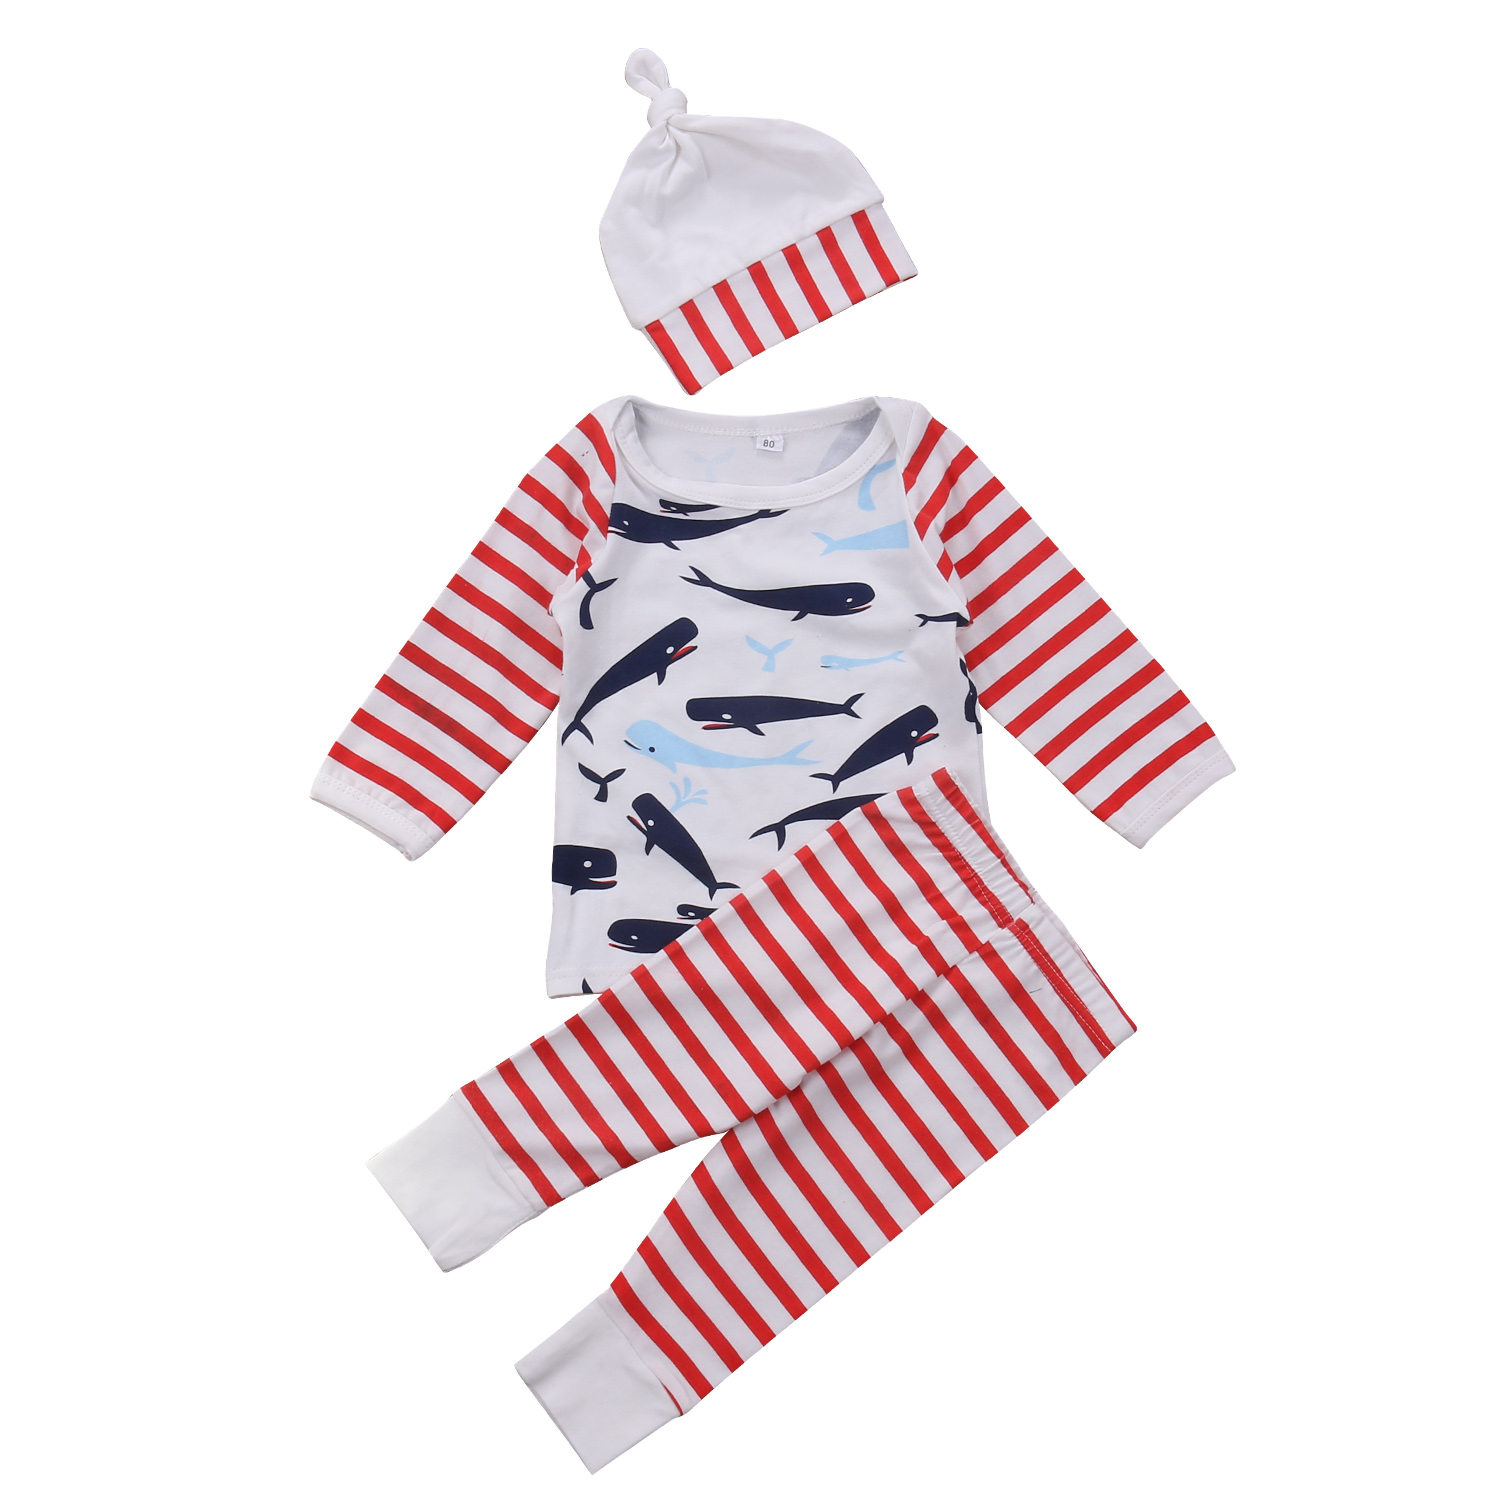 3pcs Newborn Infant Baby Boy Girl Whales Outfits Clothes Set Babies Stripes T-shirt Pants Hats Leggings Clothing Pjs ...